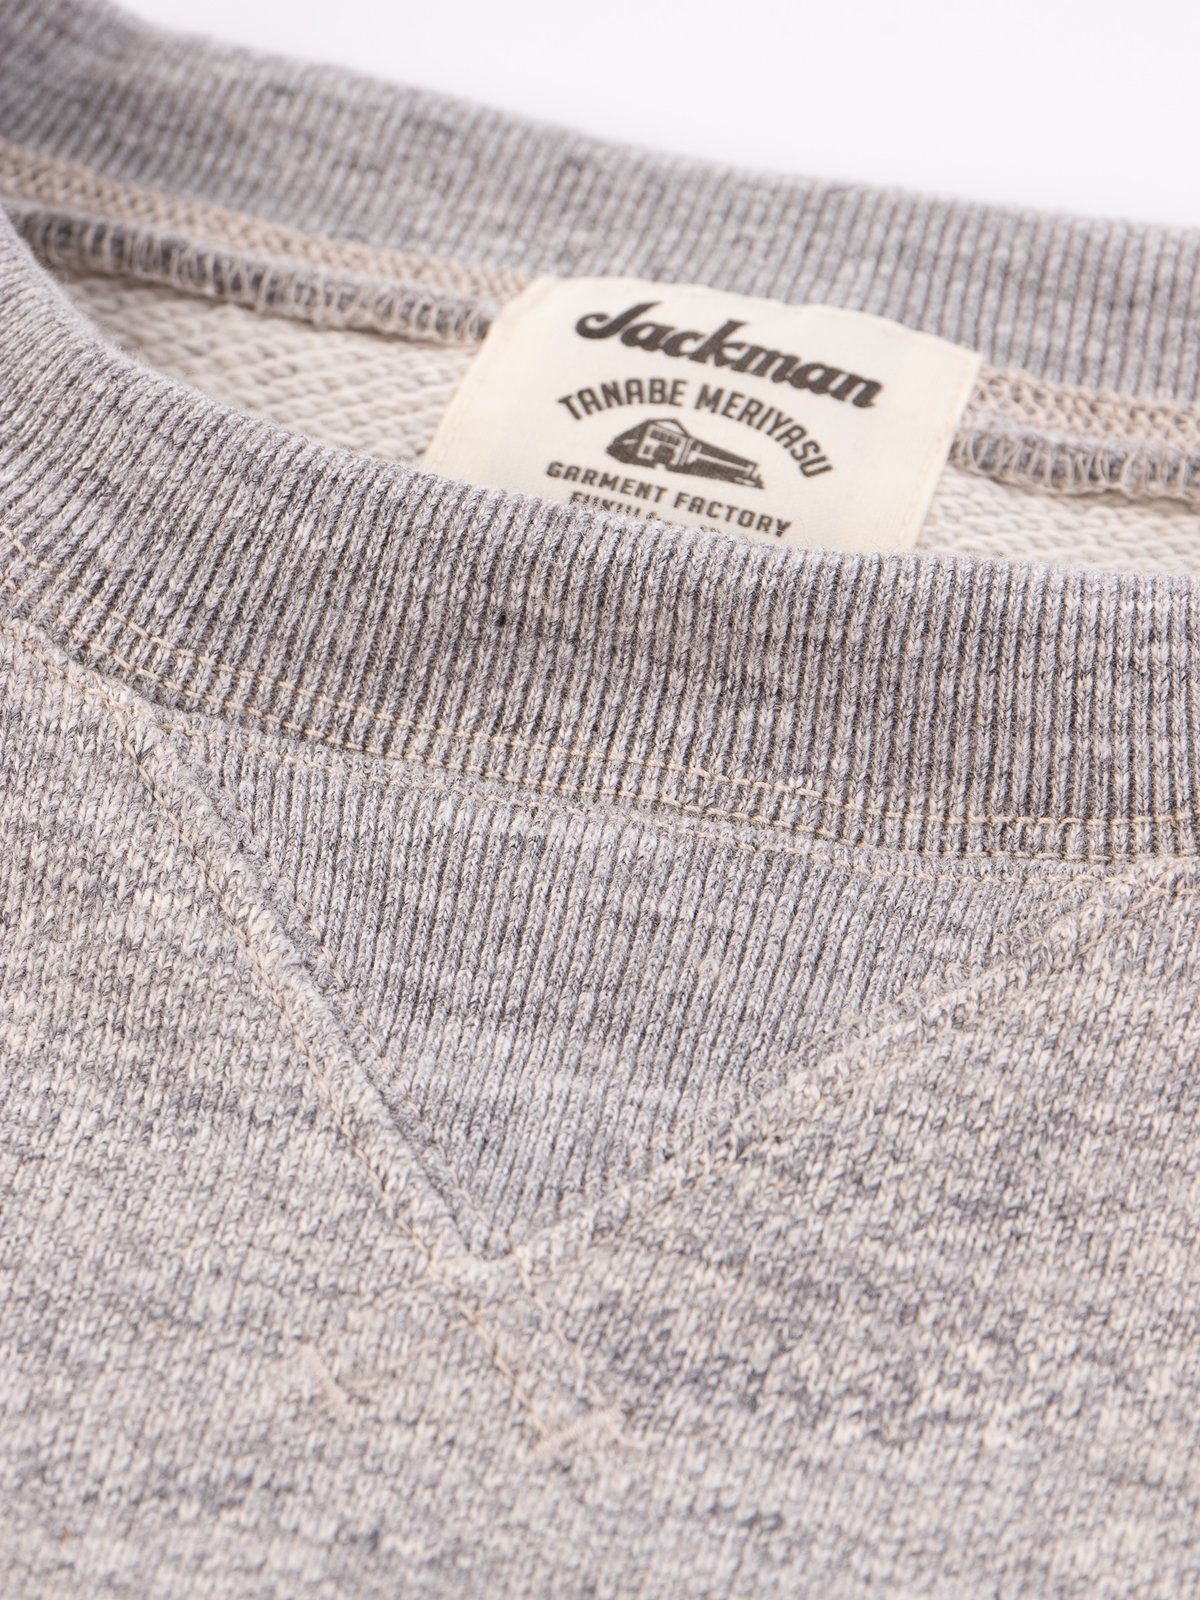 Heather Grey GG Crewneck Sweat - Image 5